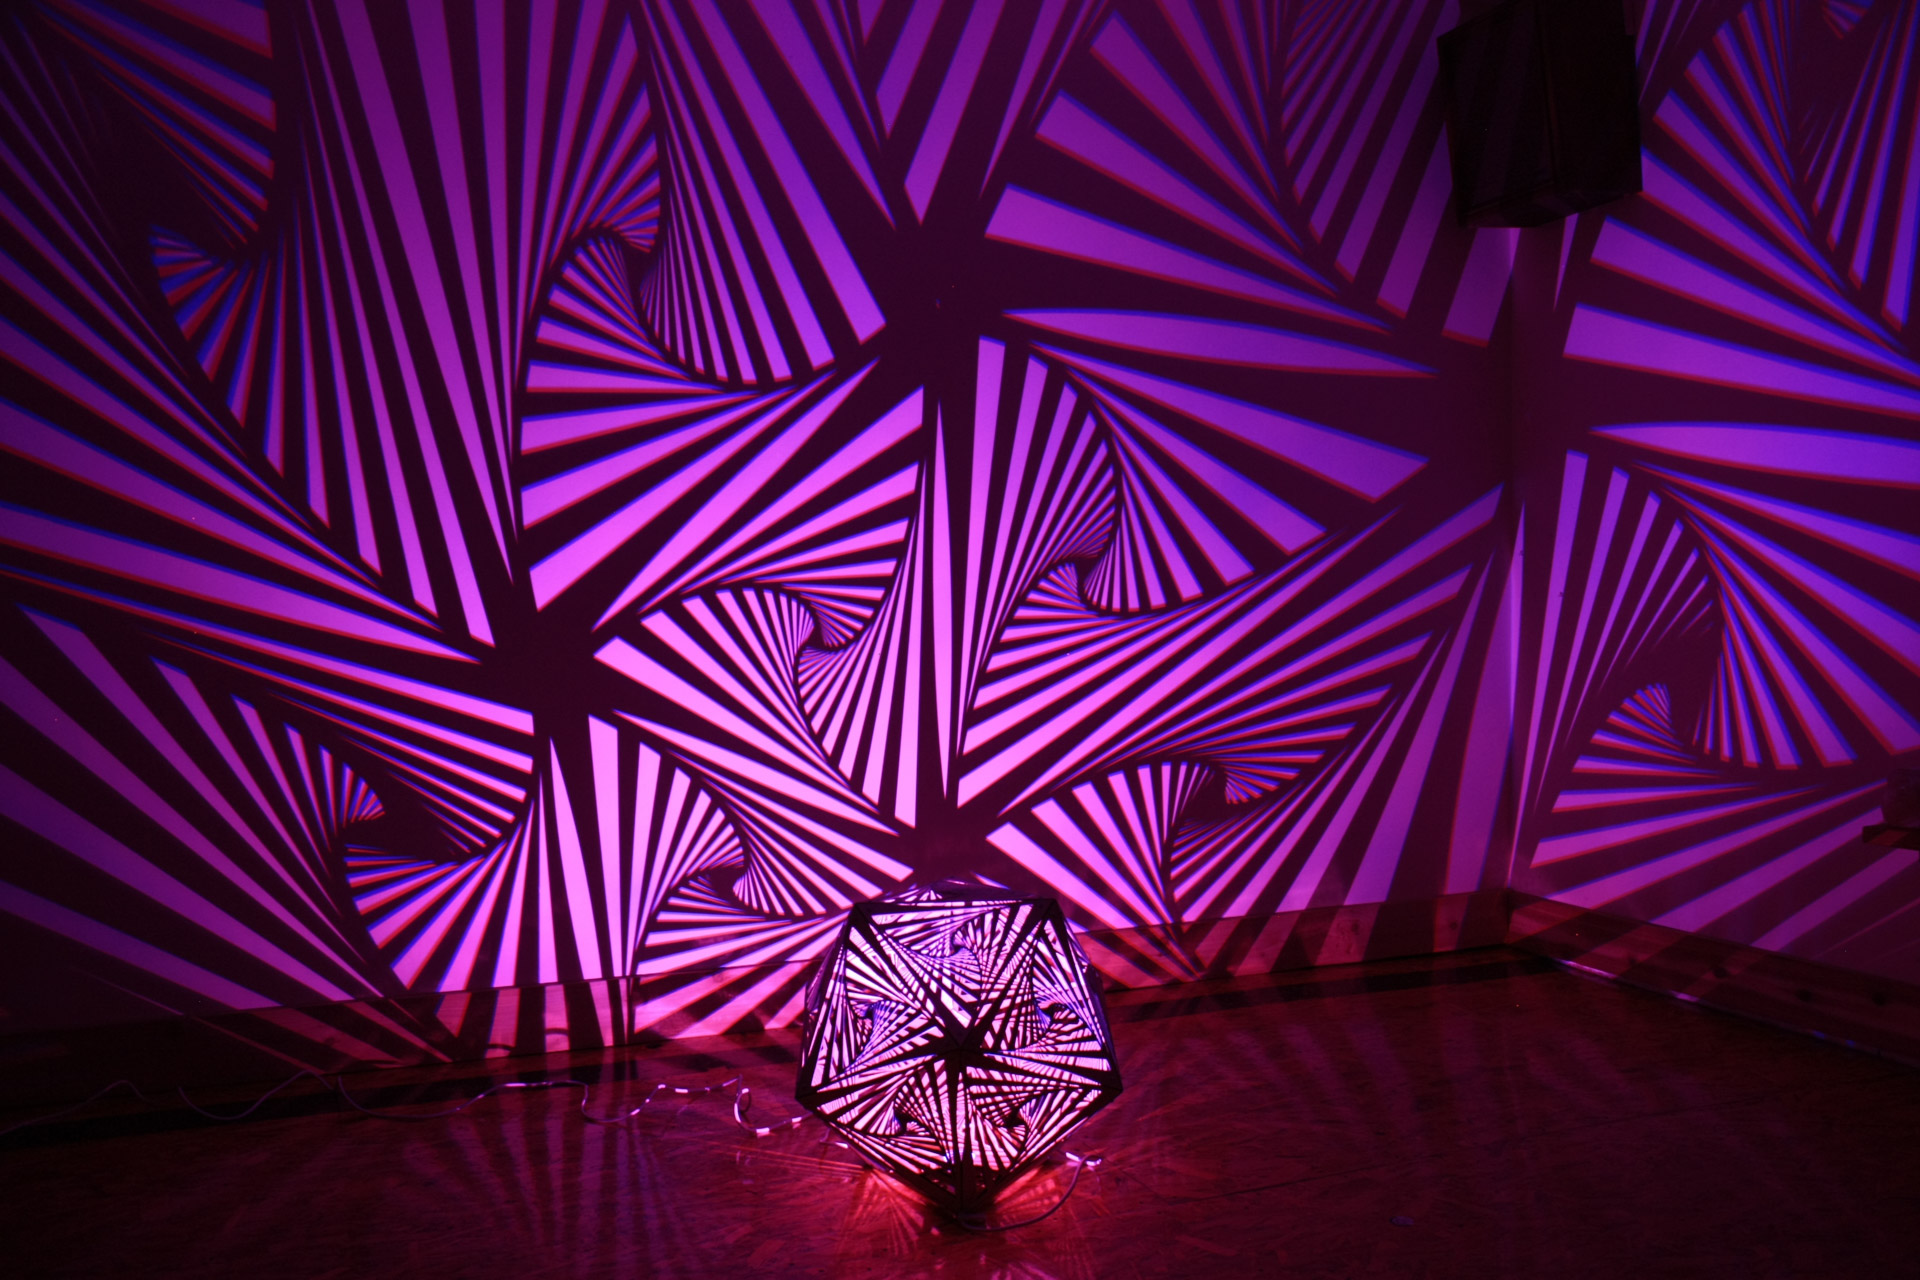 Icosahedron Spirals Light Artwork